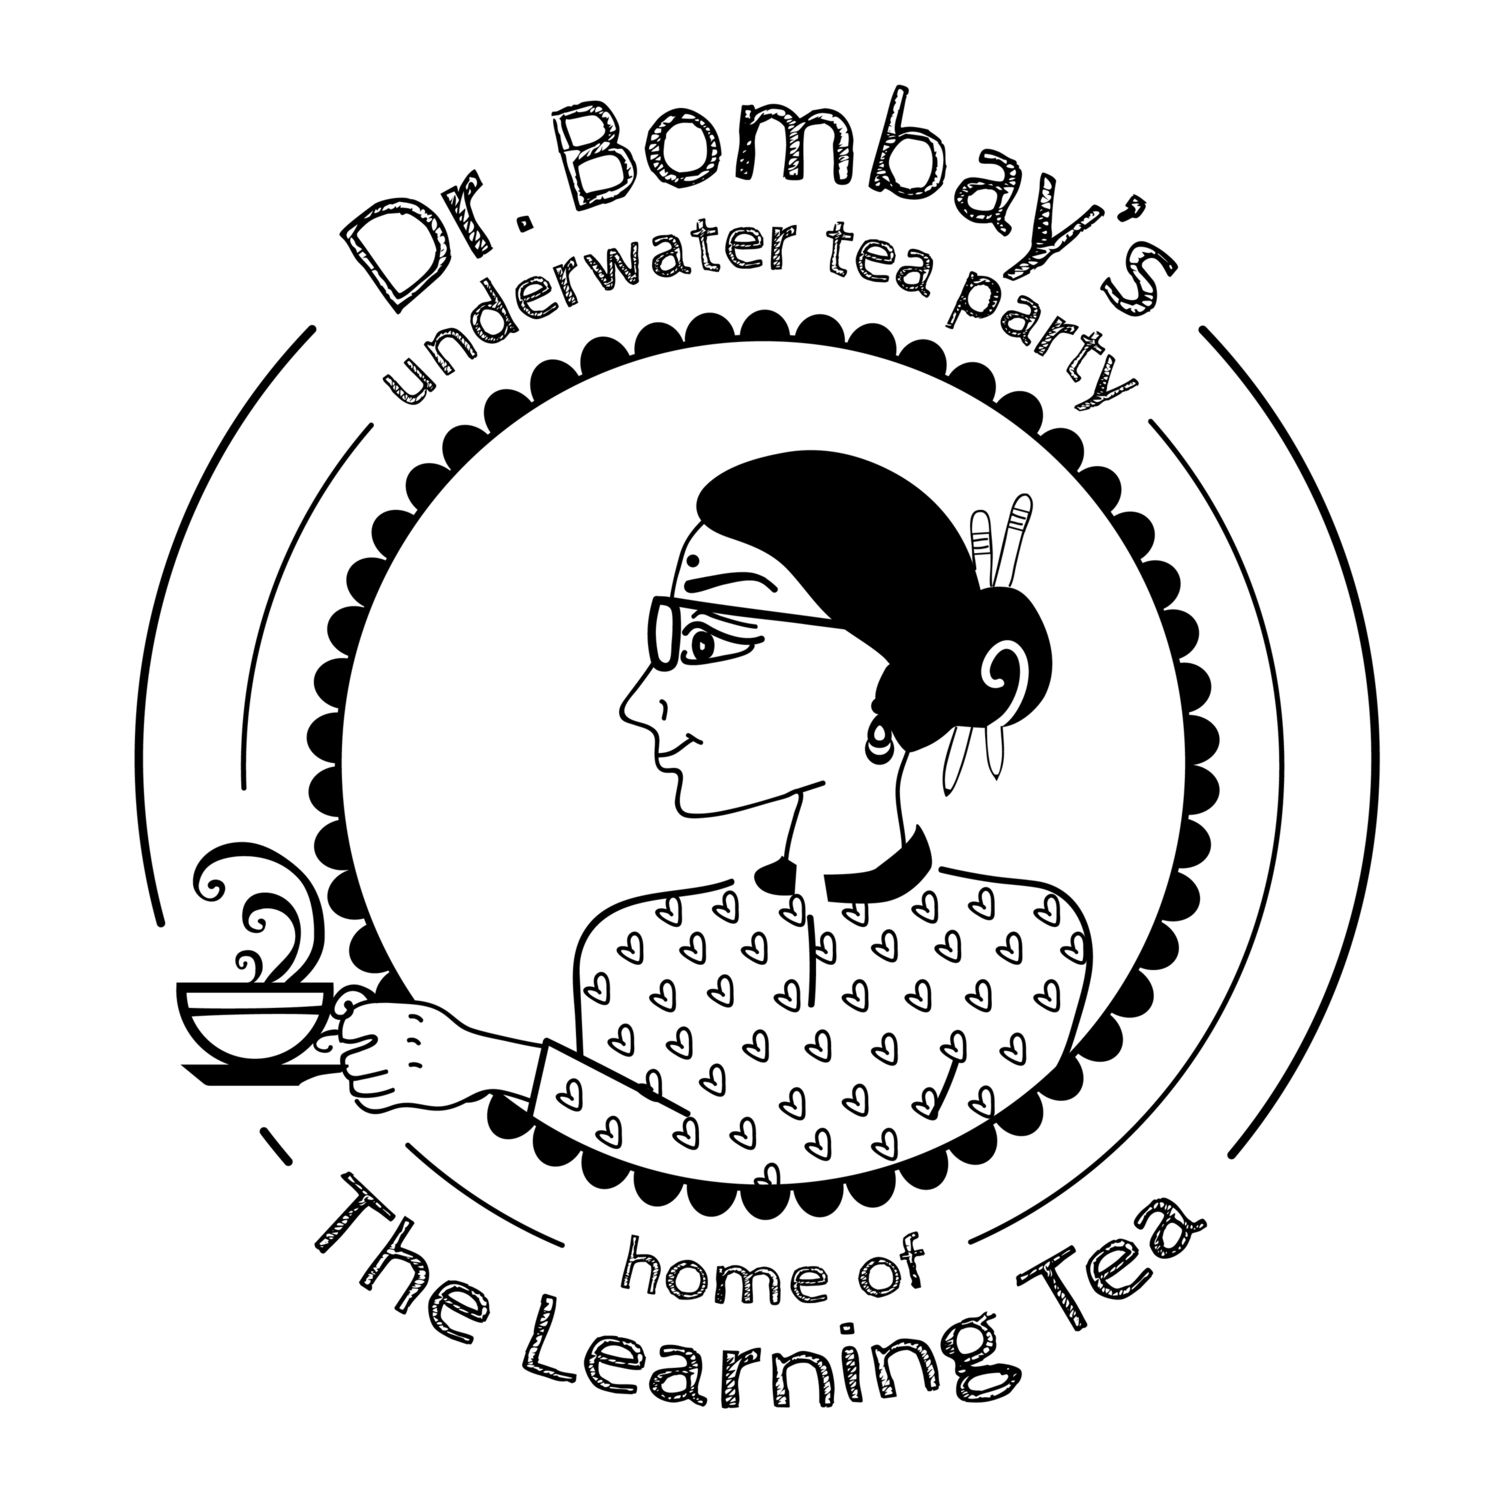 Dr. Bombay's underwater Tea Party